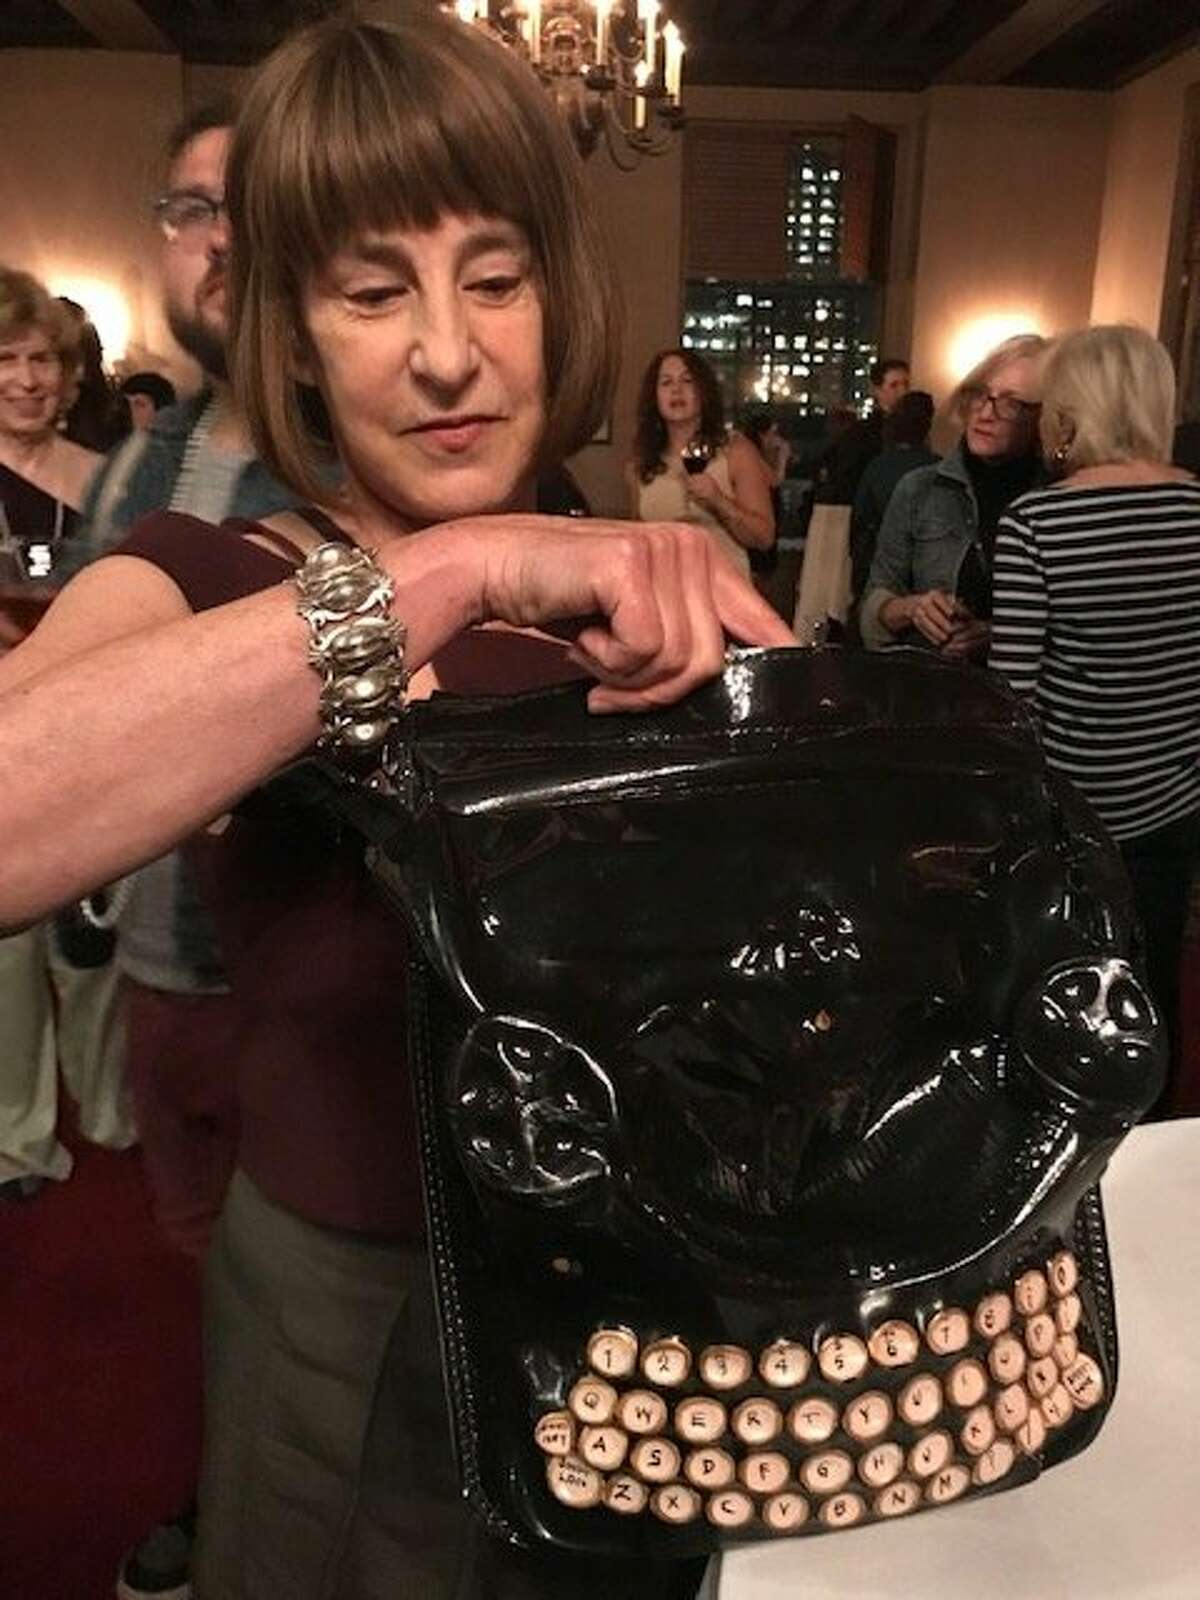 Alexandra Szerlip with typewriter purse, at Litquake opening party